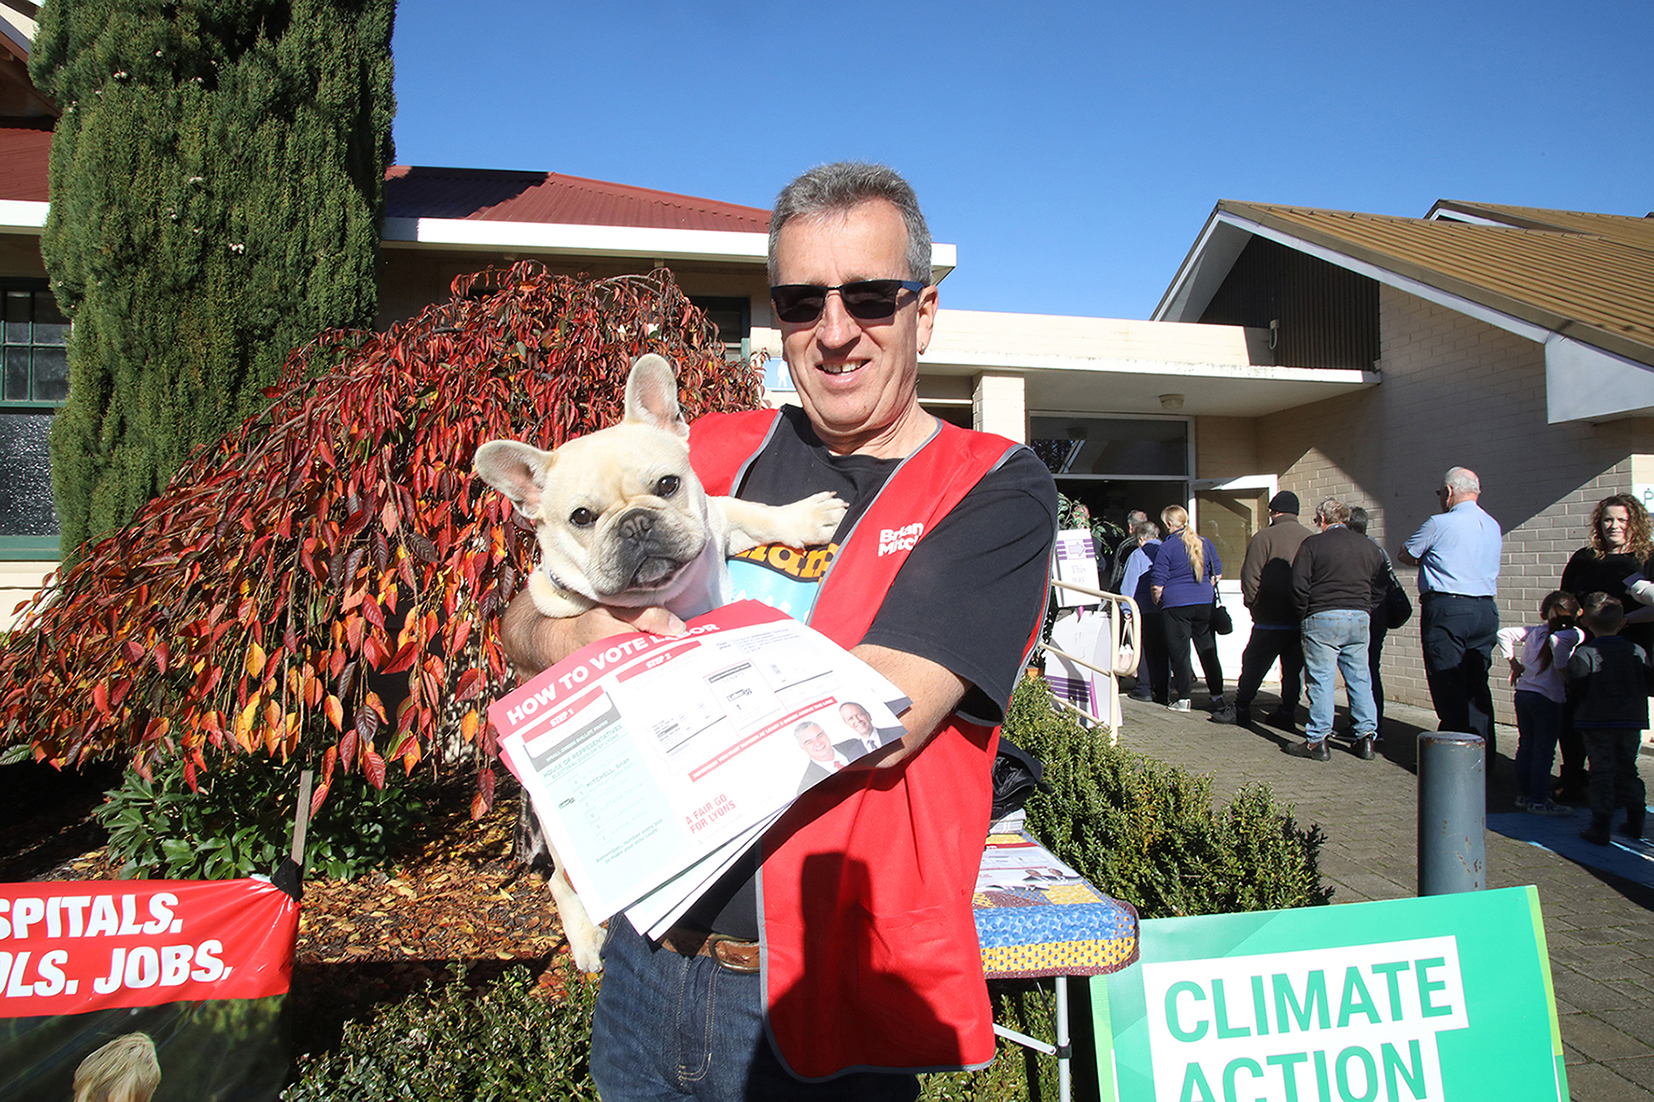 Geoff Blyth and Patrick, an 8-month-old French bulldog, hand out How-to-vote flyers in front of the Westbury polling booth in Lyall Street on Saturday 18 May.  Photo by Mike Moores